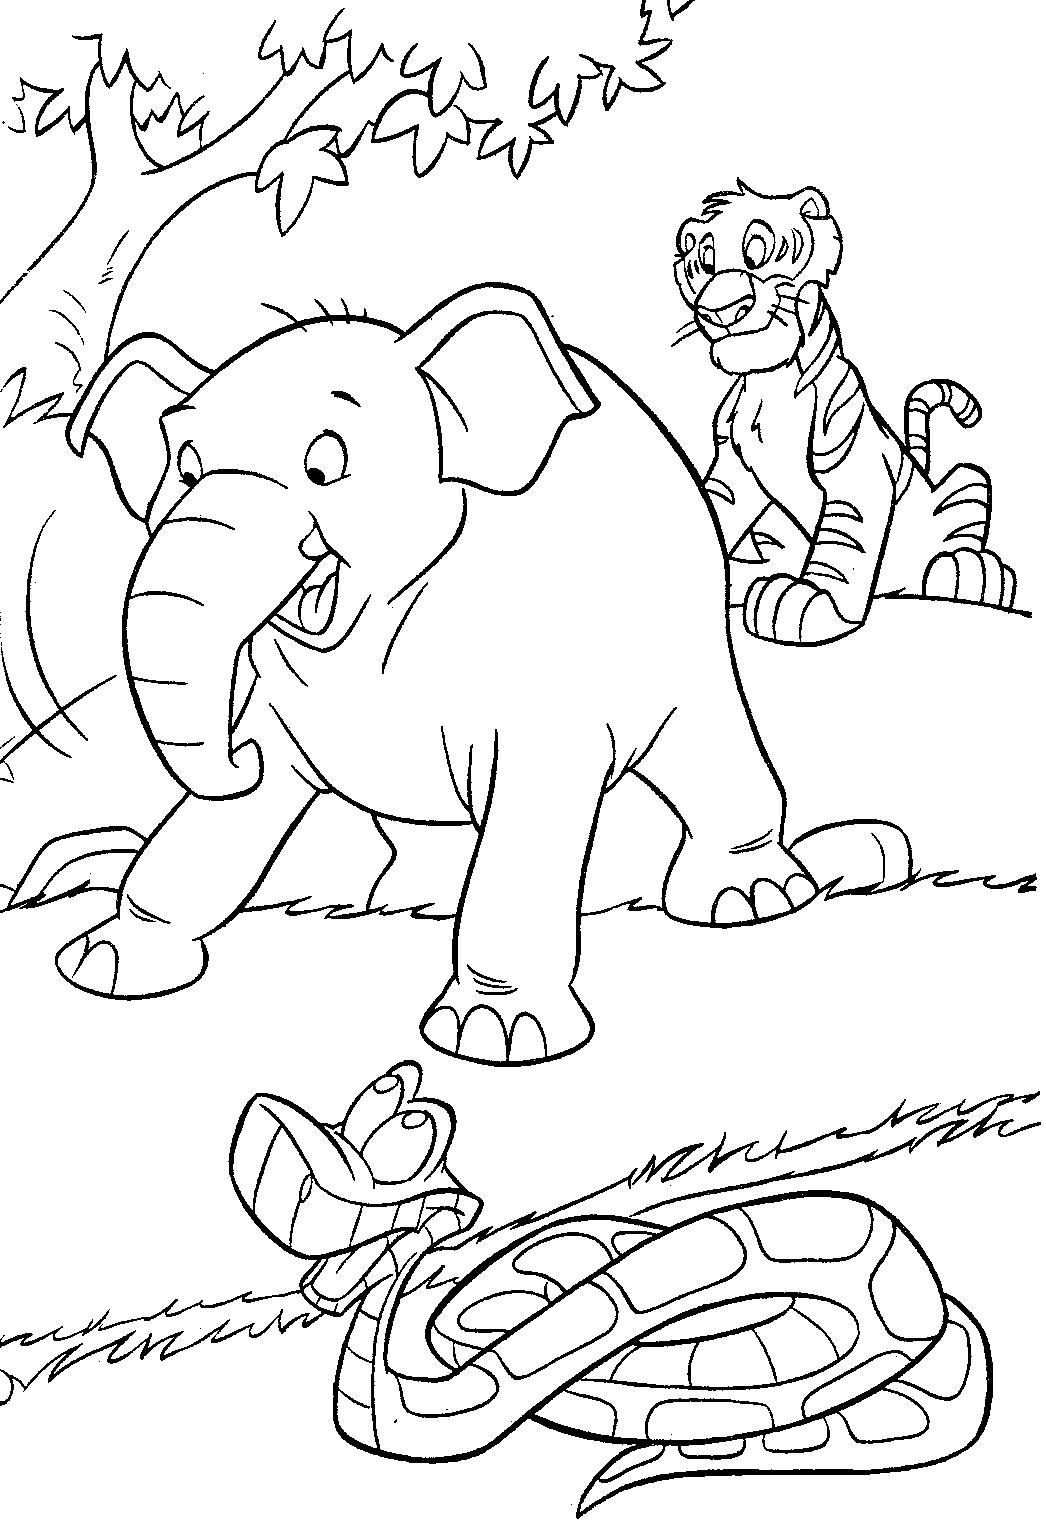 jungle coloring pages best coloring pages for kids. Black Bedroom Furniture Sets. Home Design Ideas